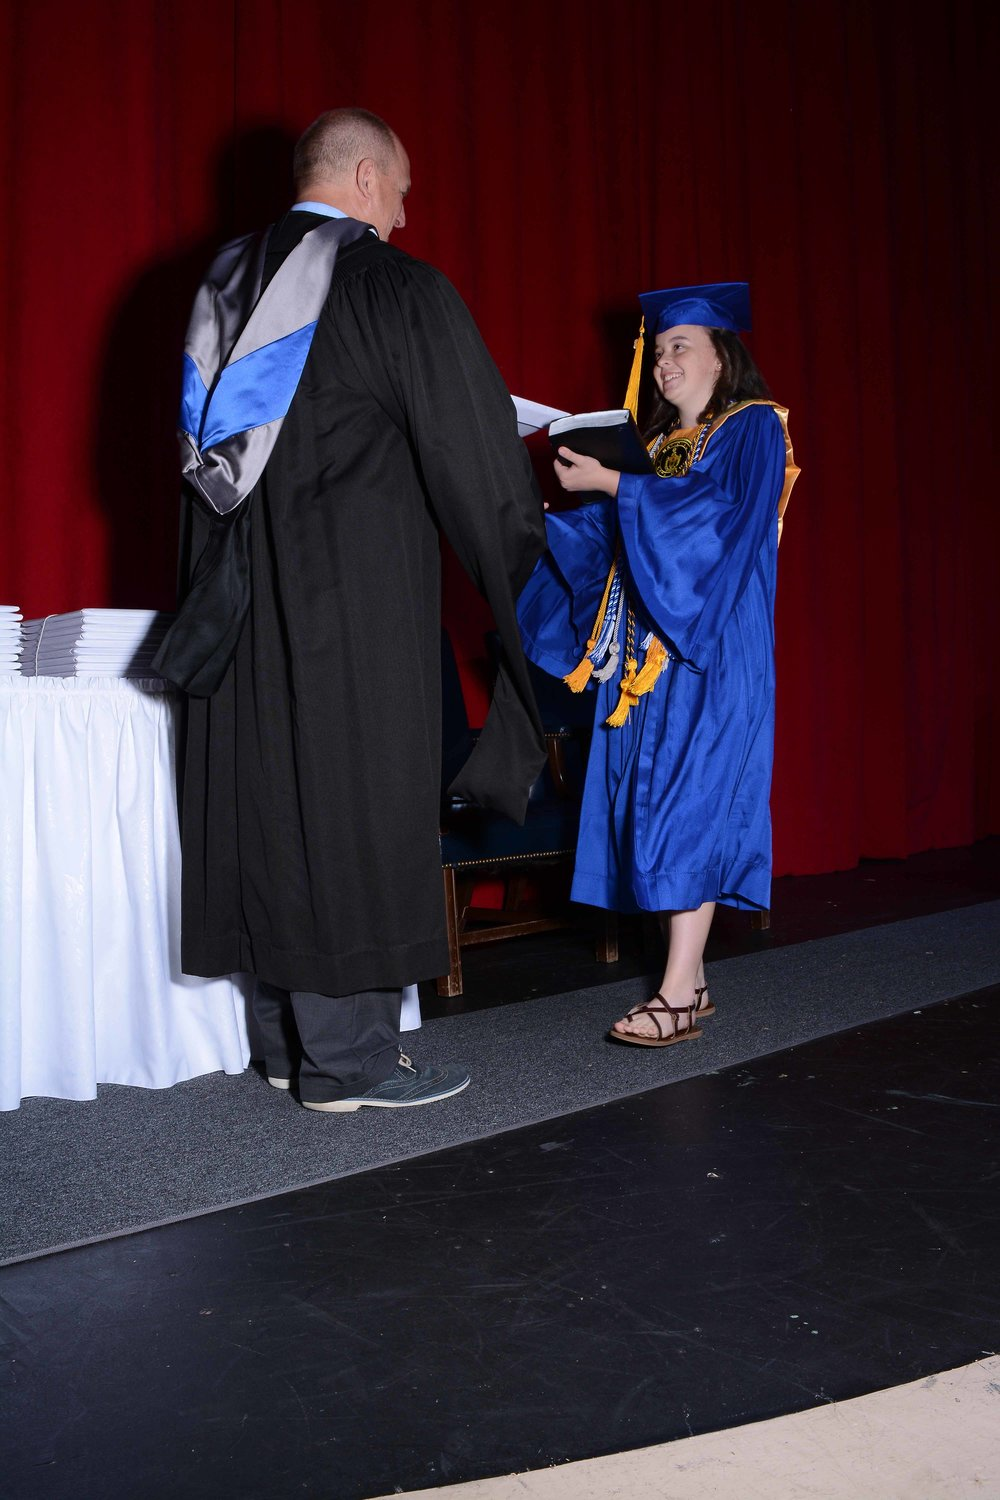 May14 Commencement13.jpg